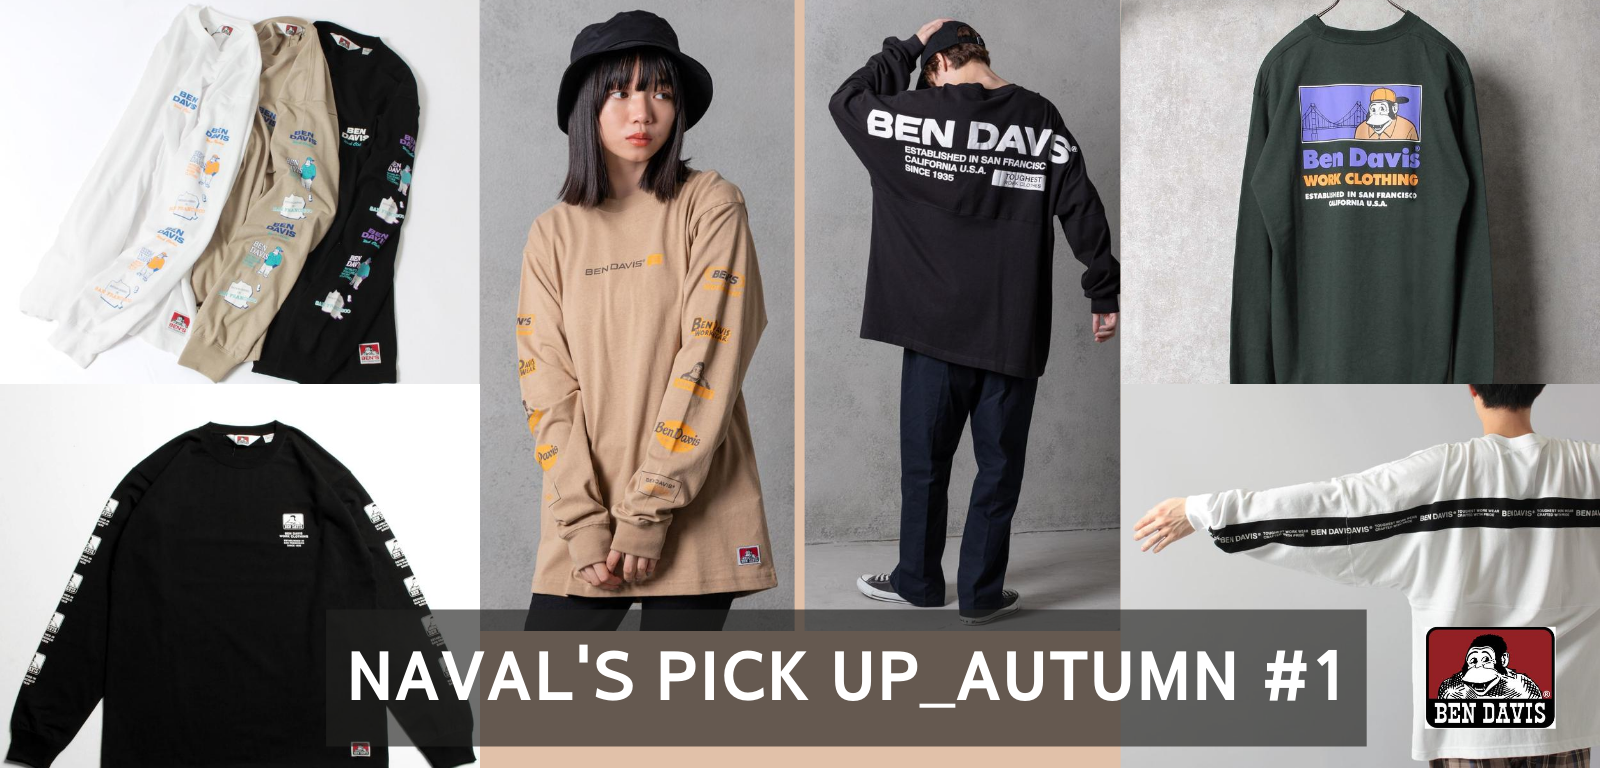 【NAVAL'S PICK UP_AUTUMN #1】BEN DAVIS WHITE LABEL プリントが映えるロンT。